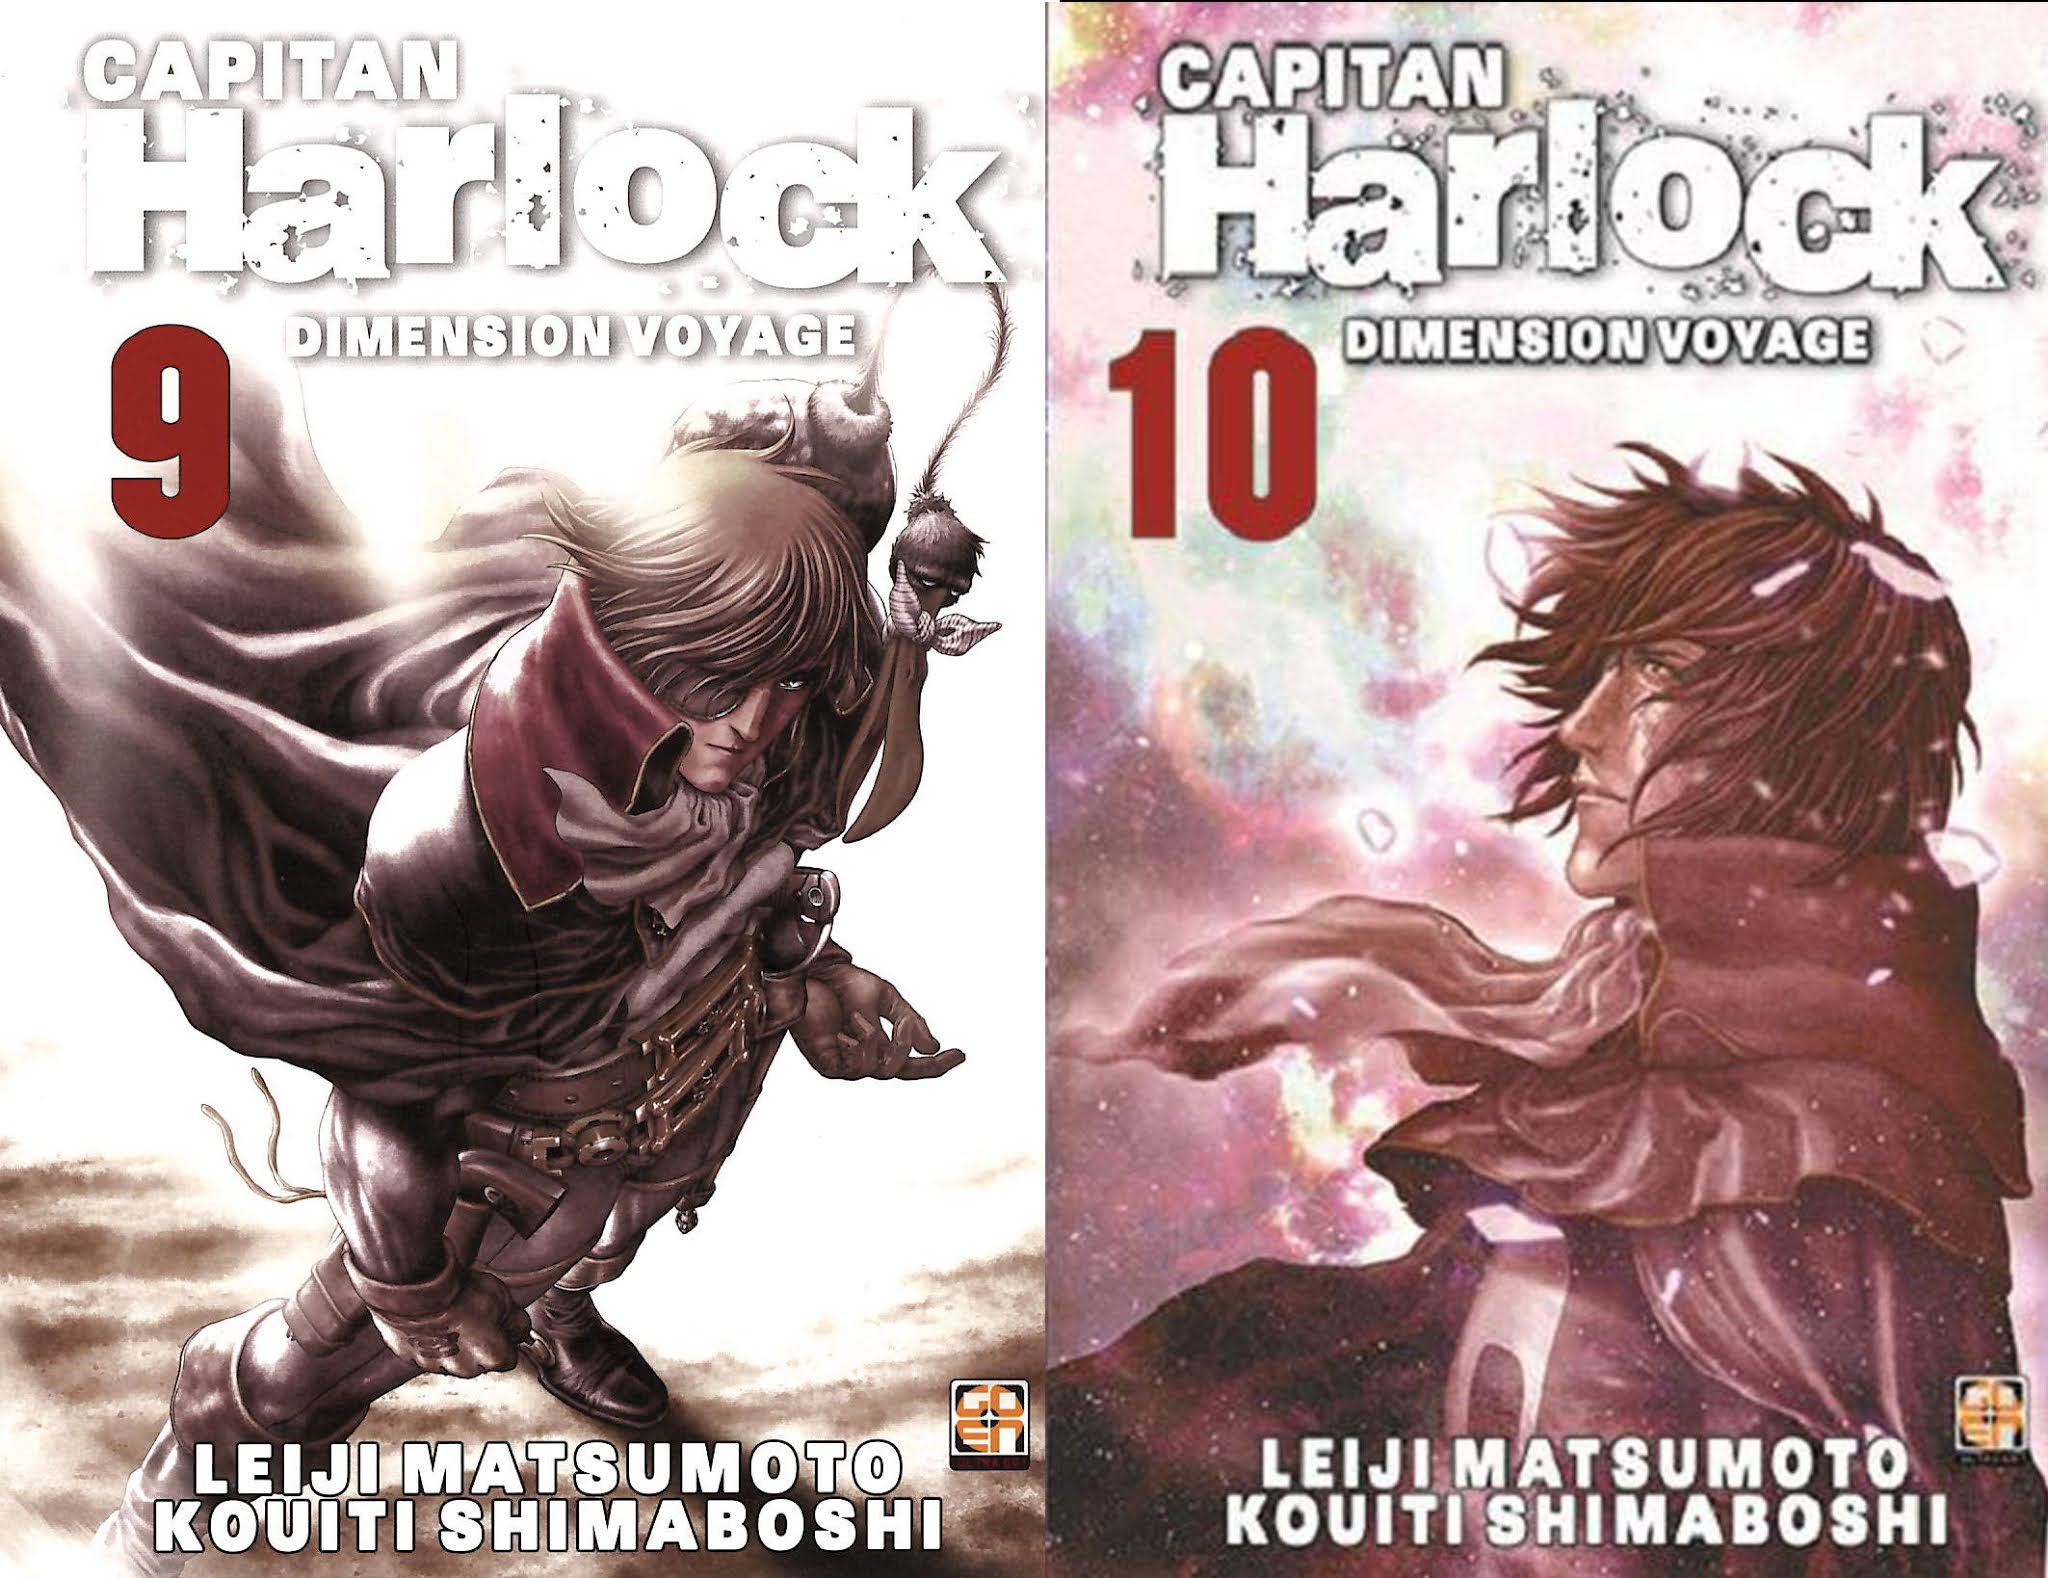 Capitan Harlock Dimension Voyage 9 - 10